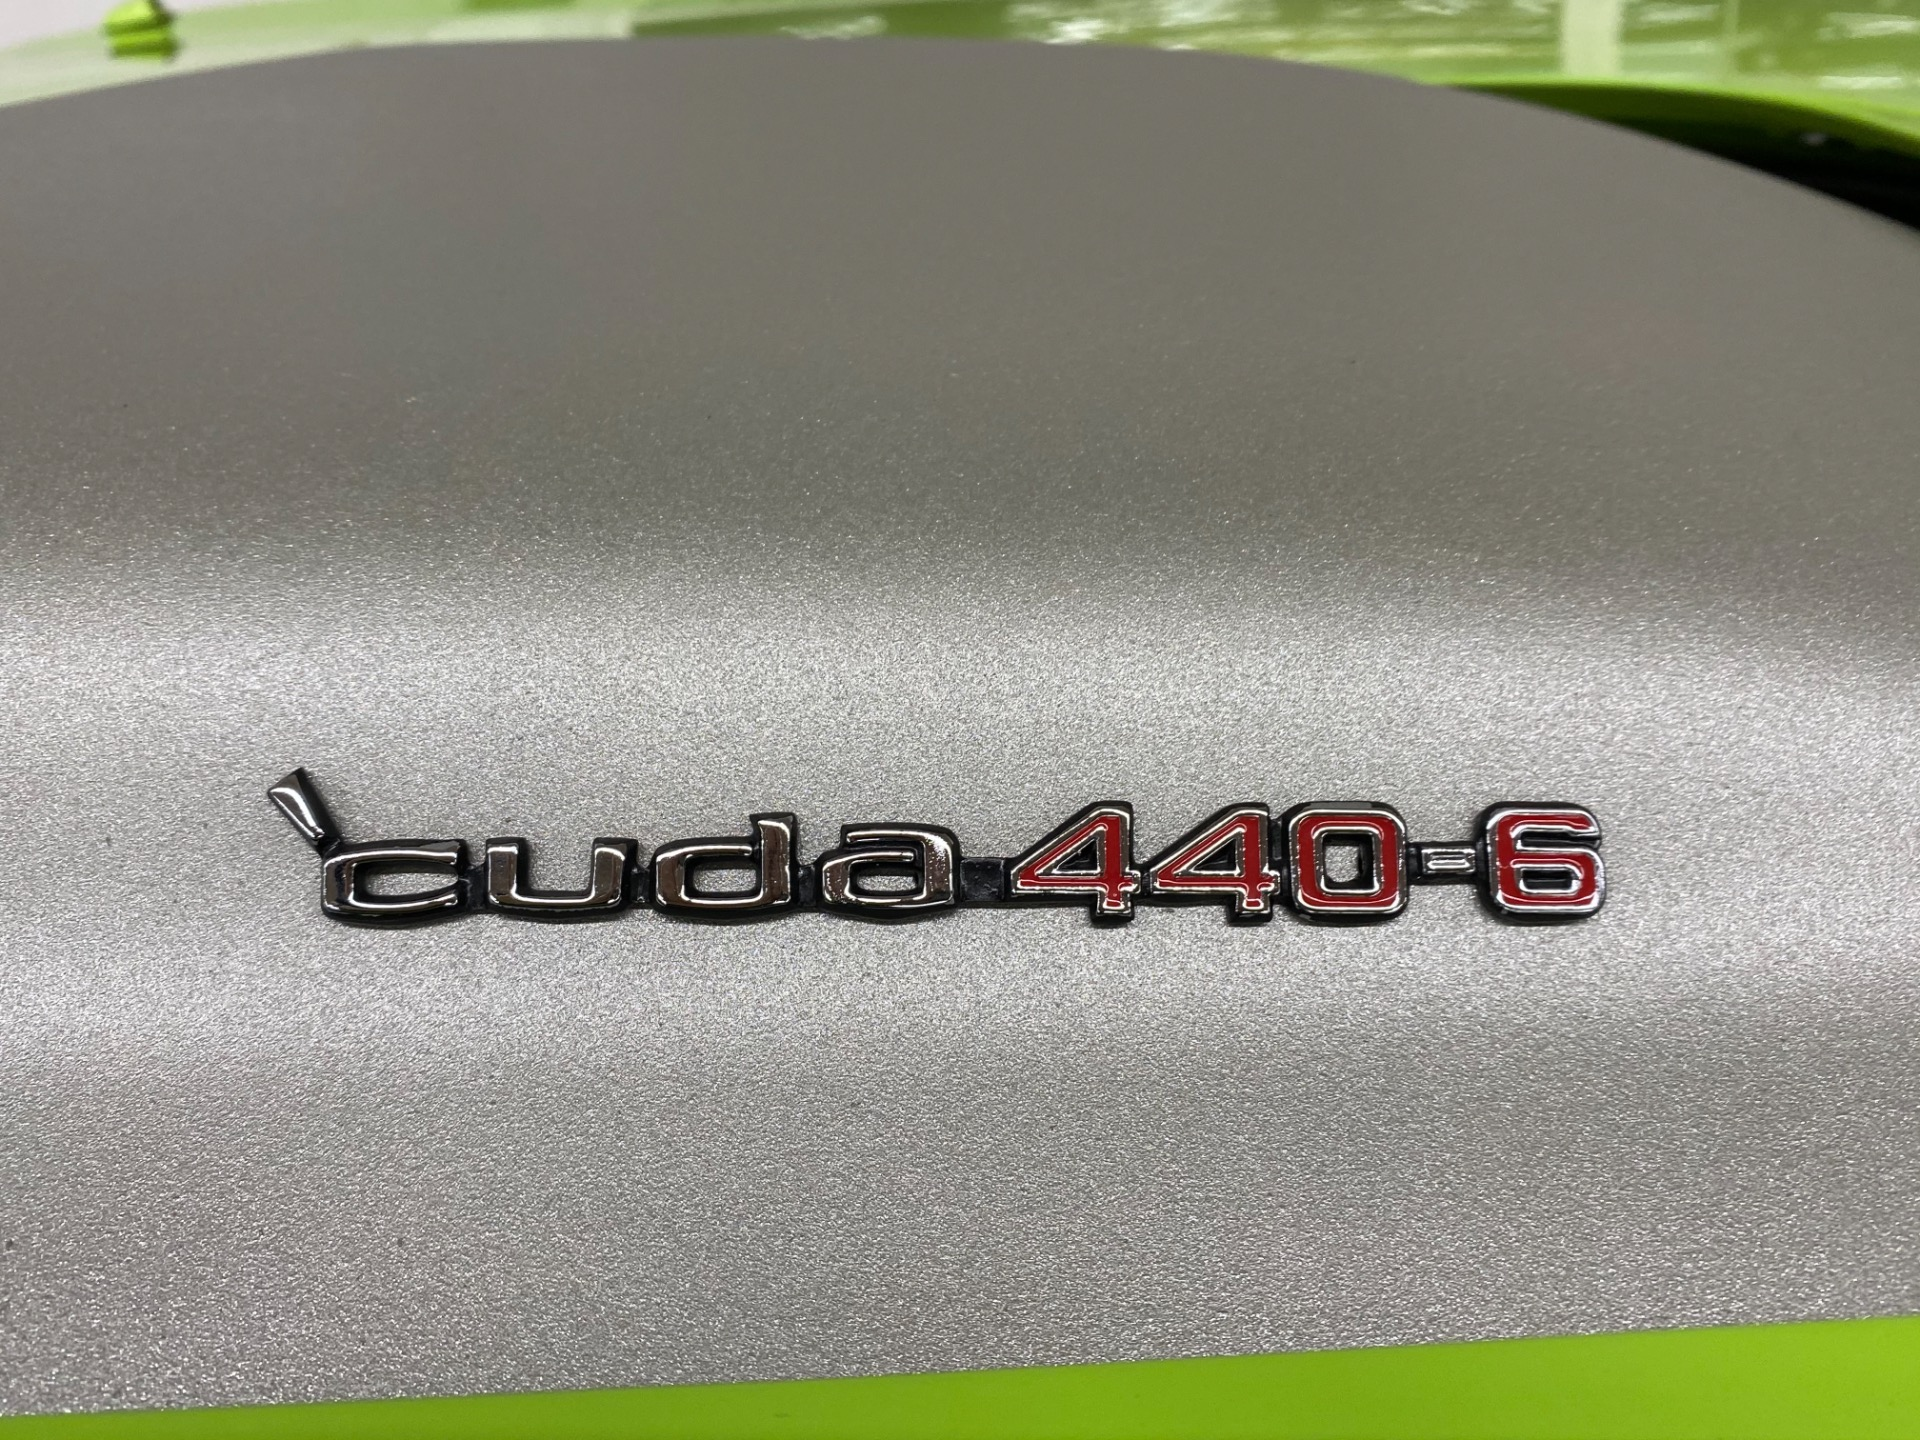 Used 1970 Plymouth Cuda - RARE SUB LIME GREEN - V CODE 440 3X2 - 4 SPEED - FENDER TAG - SEE VIDEO | Mundelein, IL